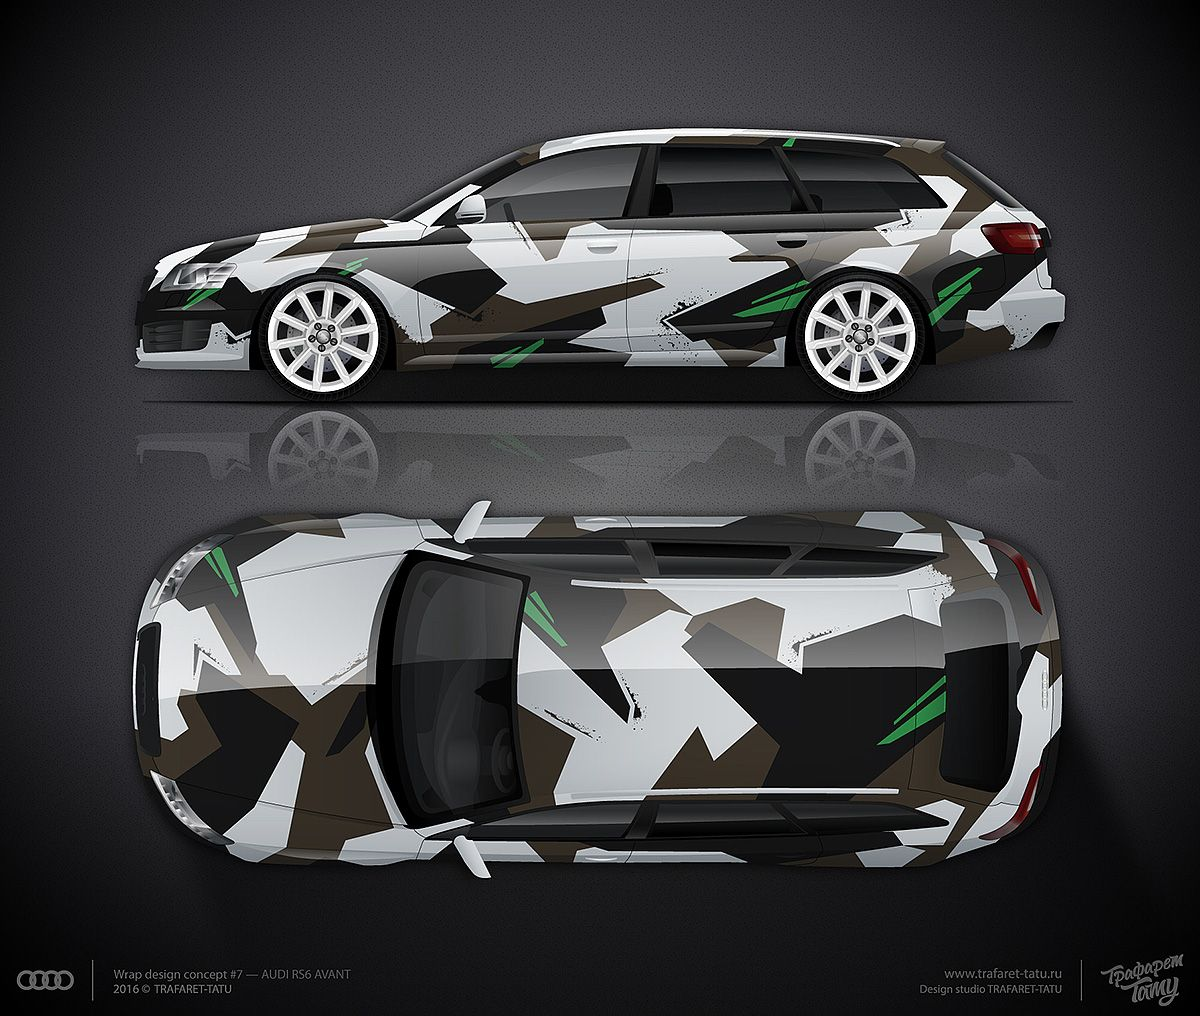 Design consept #7 for Audi RS6 Avant | Car Wrapping & Design ...